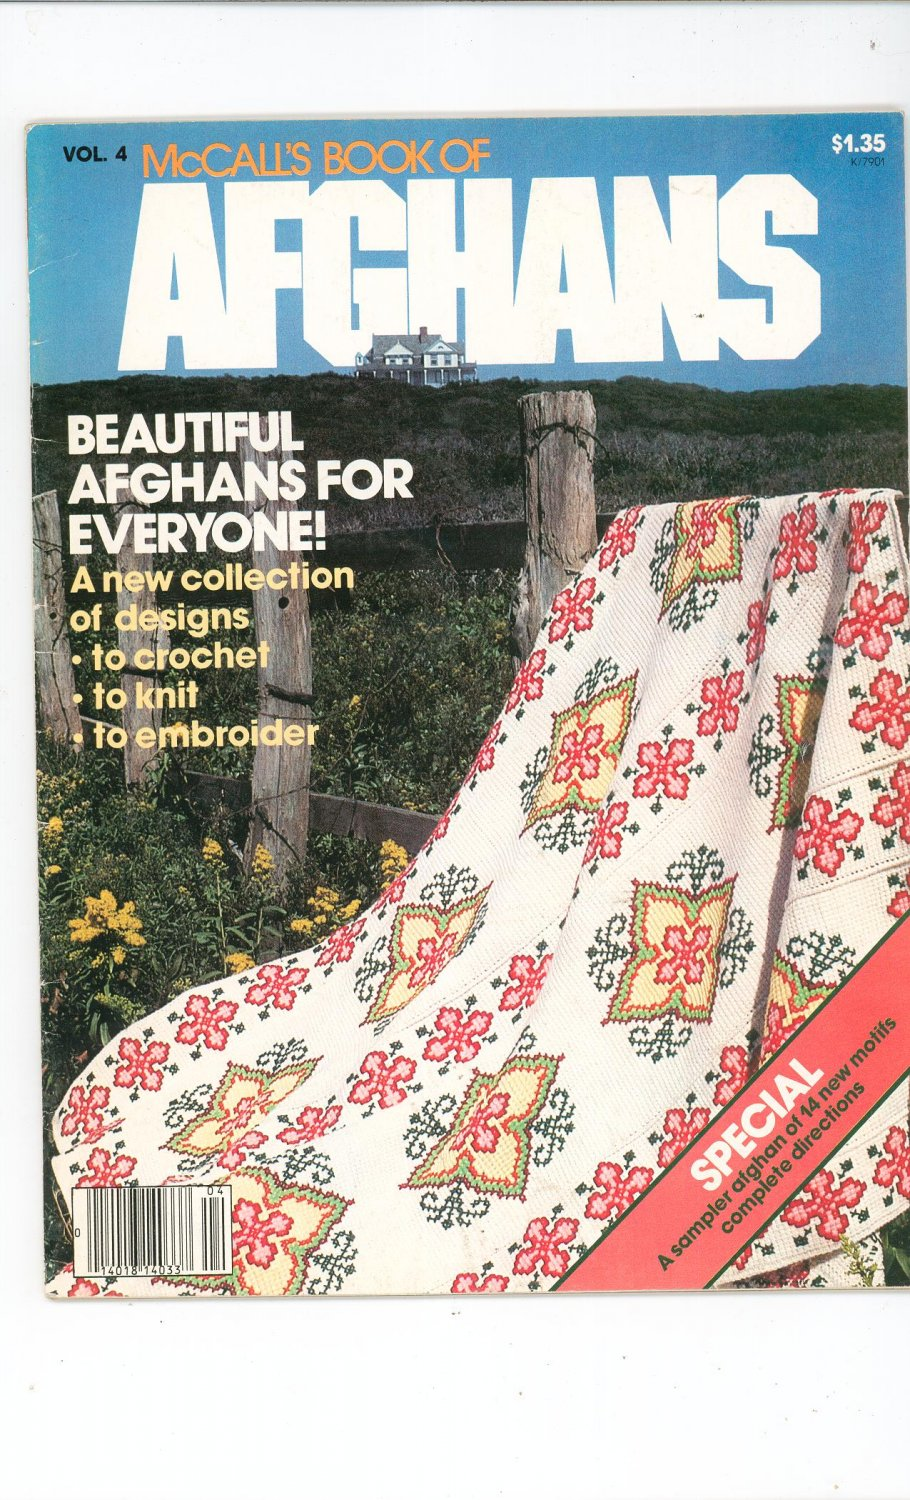 Vintage McCall's Book Of Afghans Volume 4 1979 Crochet Knit Embroider